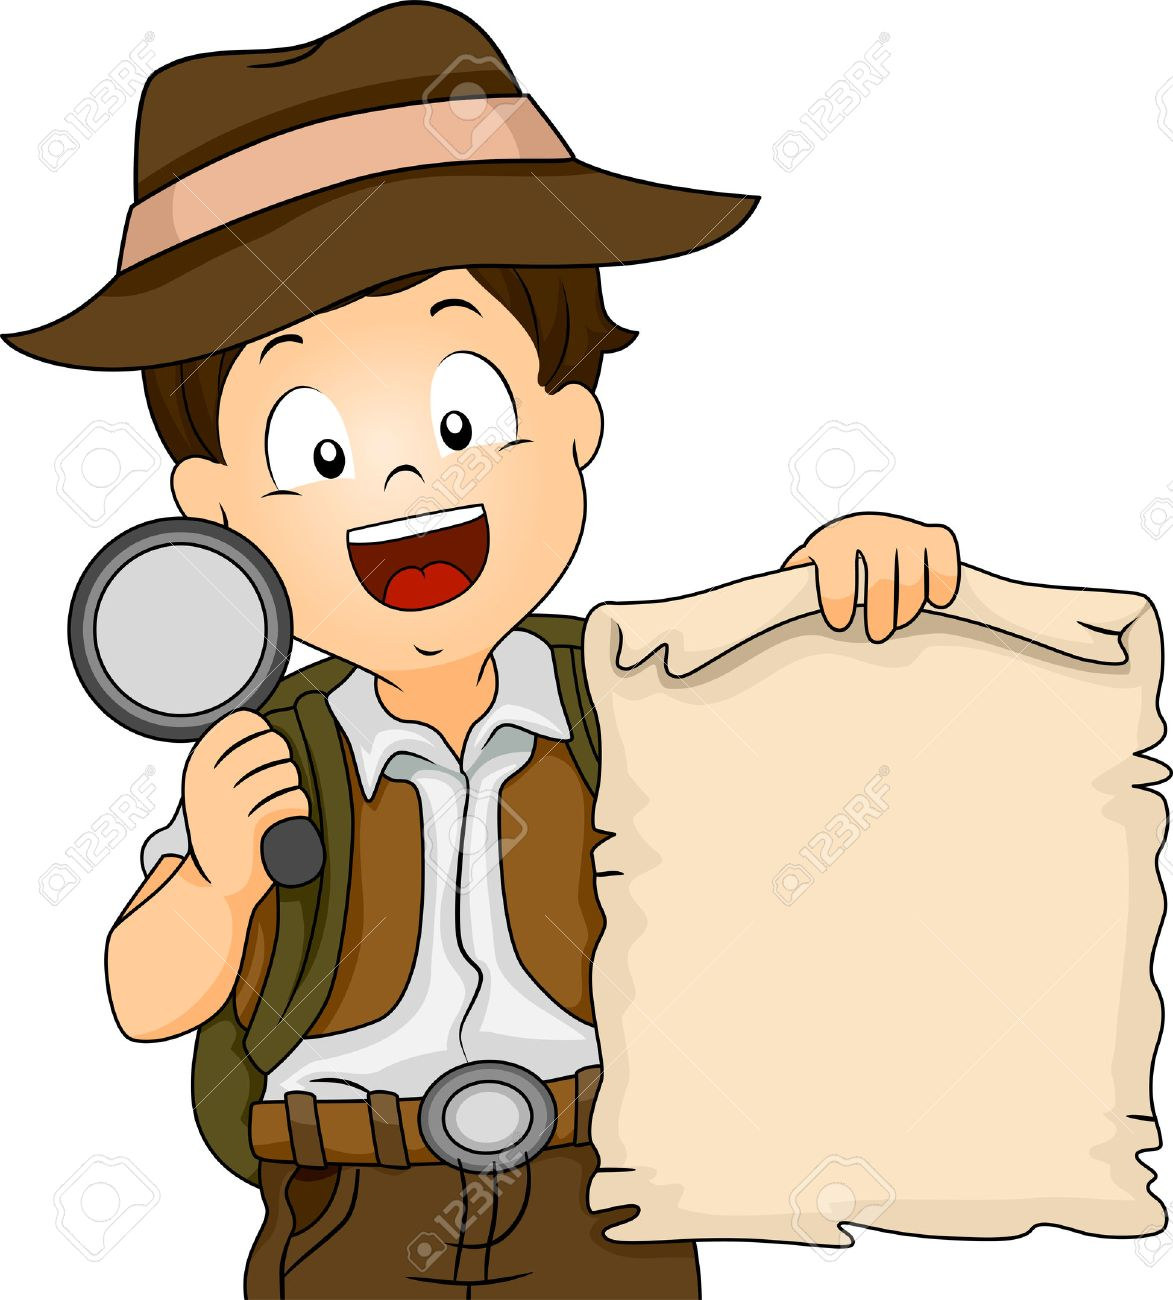 Illustration Of A Boy In Camping Gear Holding Treasure Map And Magnifying Glass Stock